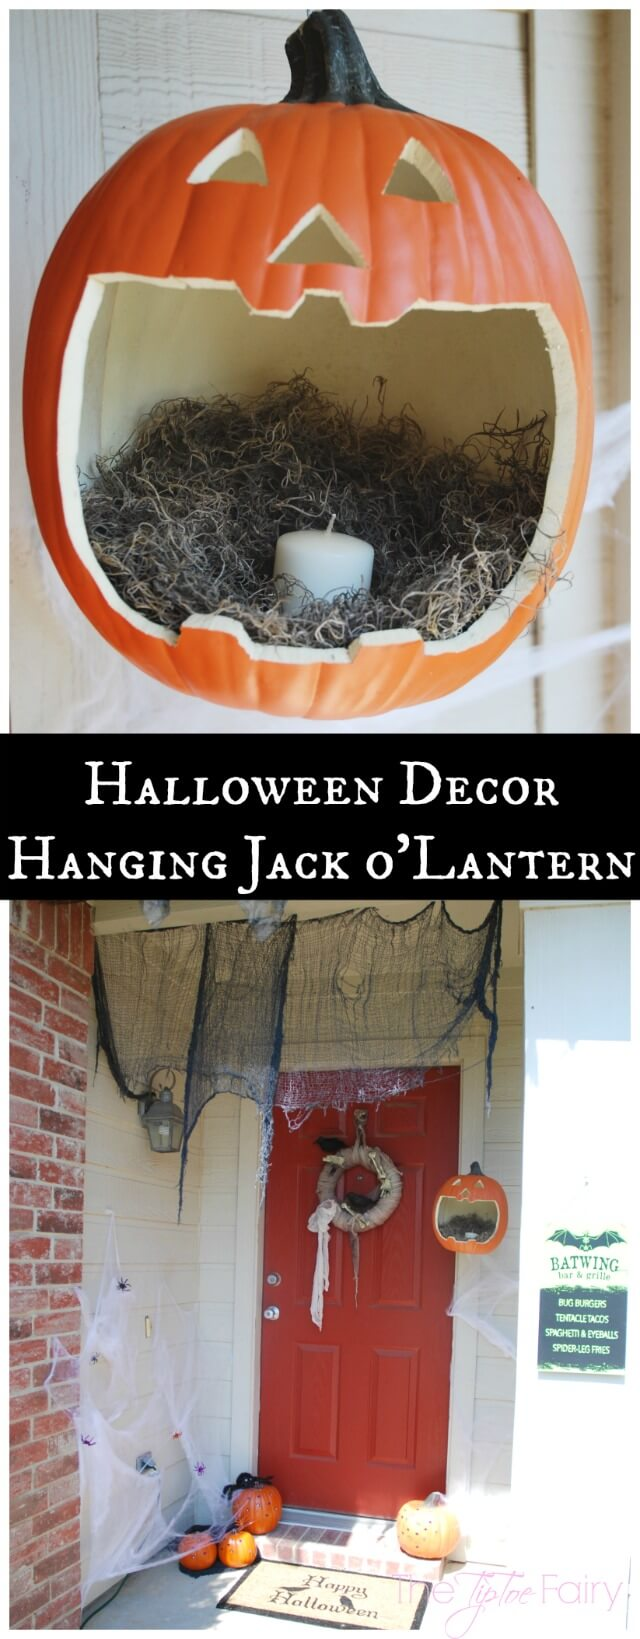 Make a Hanging Jack o'lantern - perfect for Halloween night! #TrickorSweet #ad | The TipToe Fairy